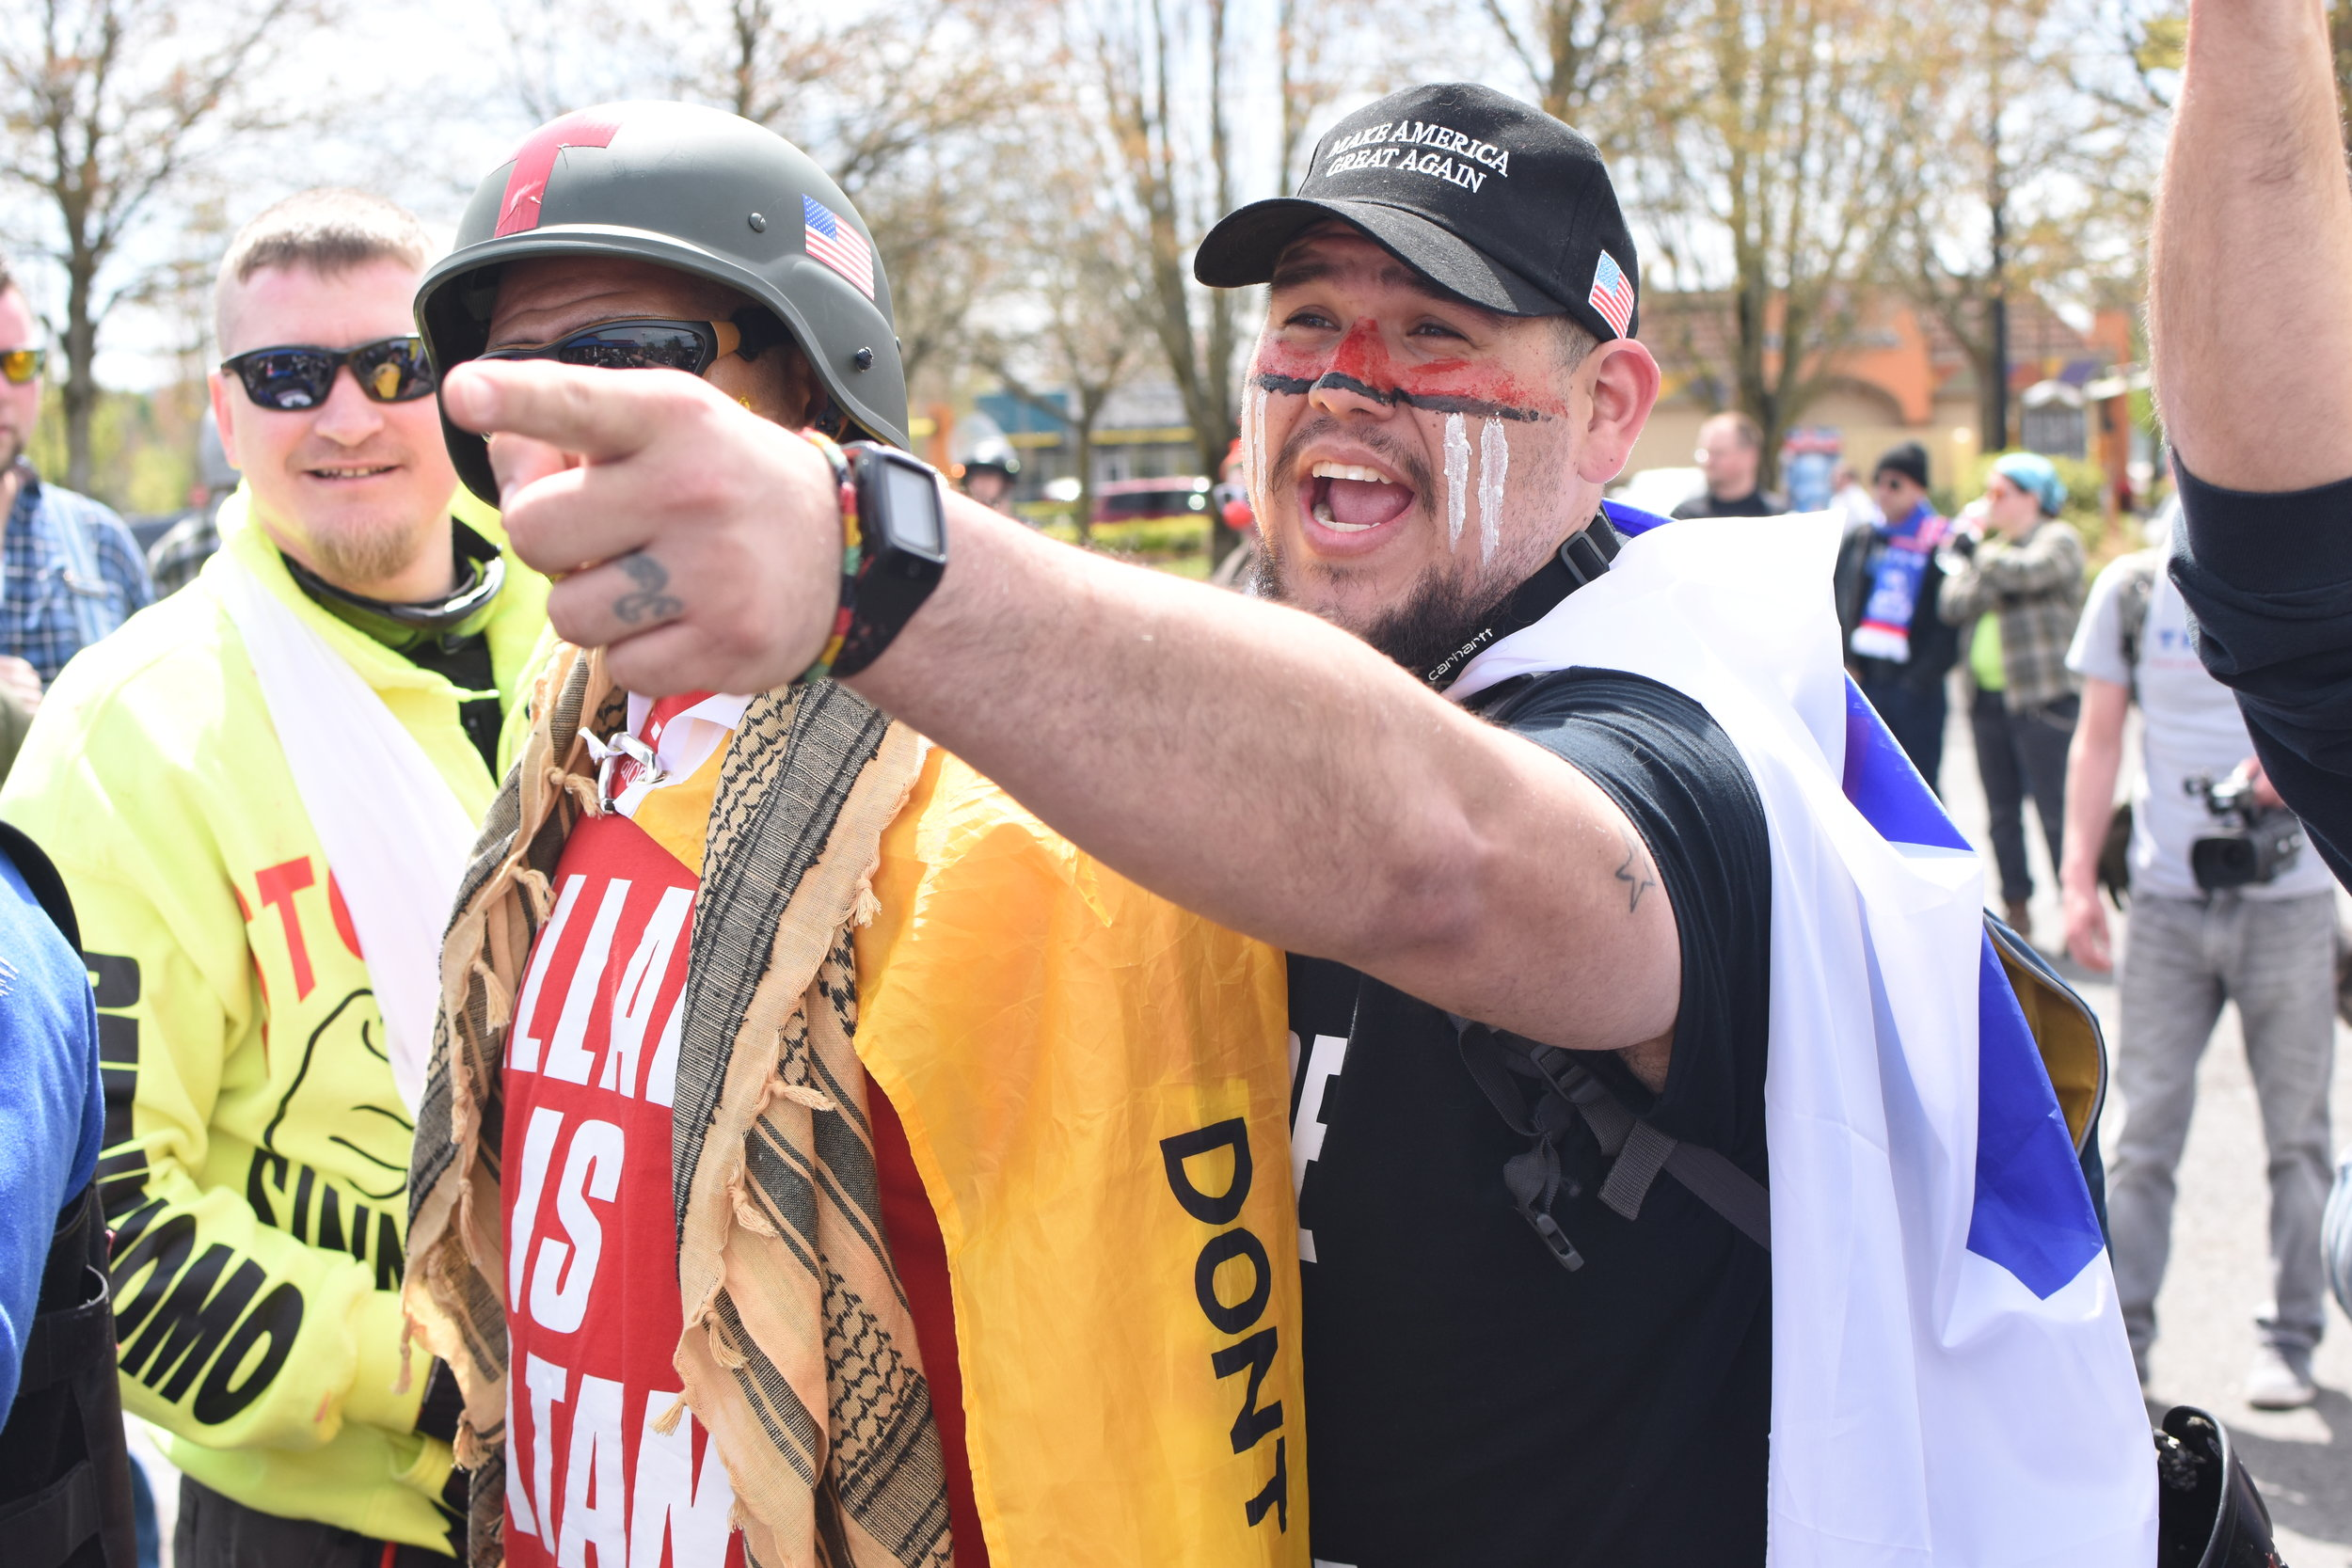 """Portland Mercury - """"Photos & Video: Saturday's Right Wing March, Left Wing Protest in Montavilla"""""""